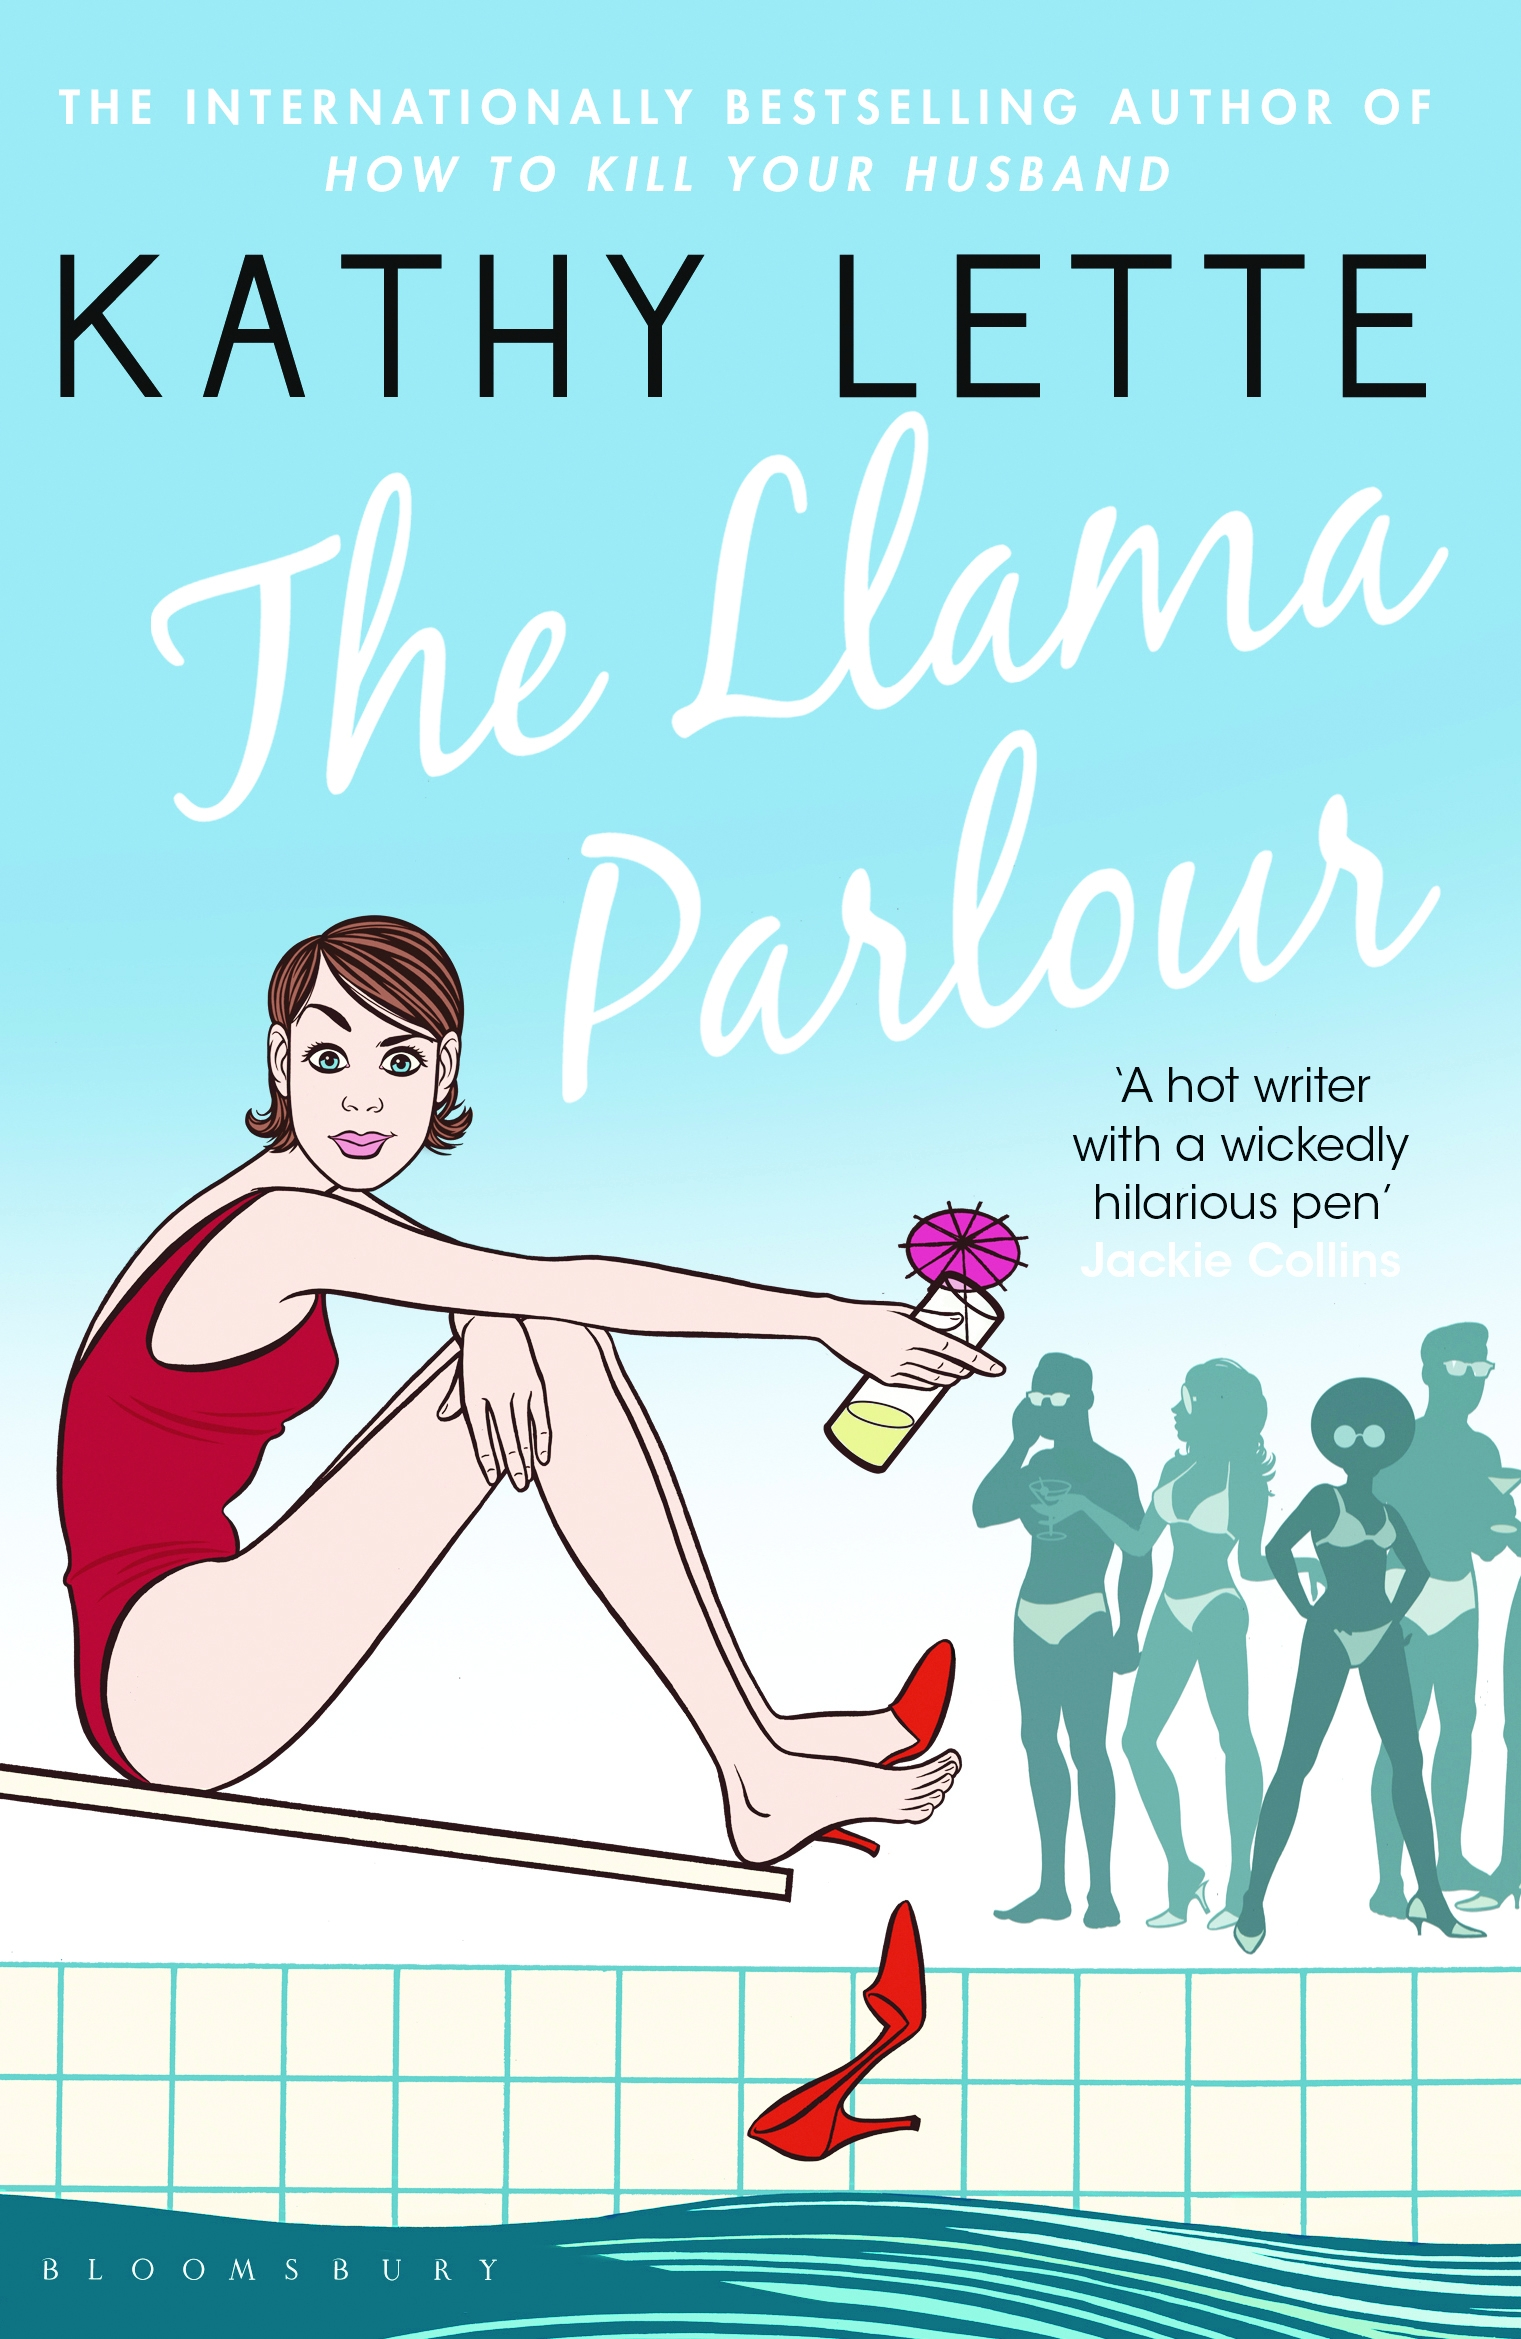 The Llama Parlour reissued